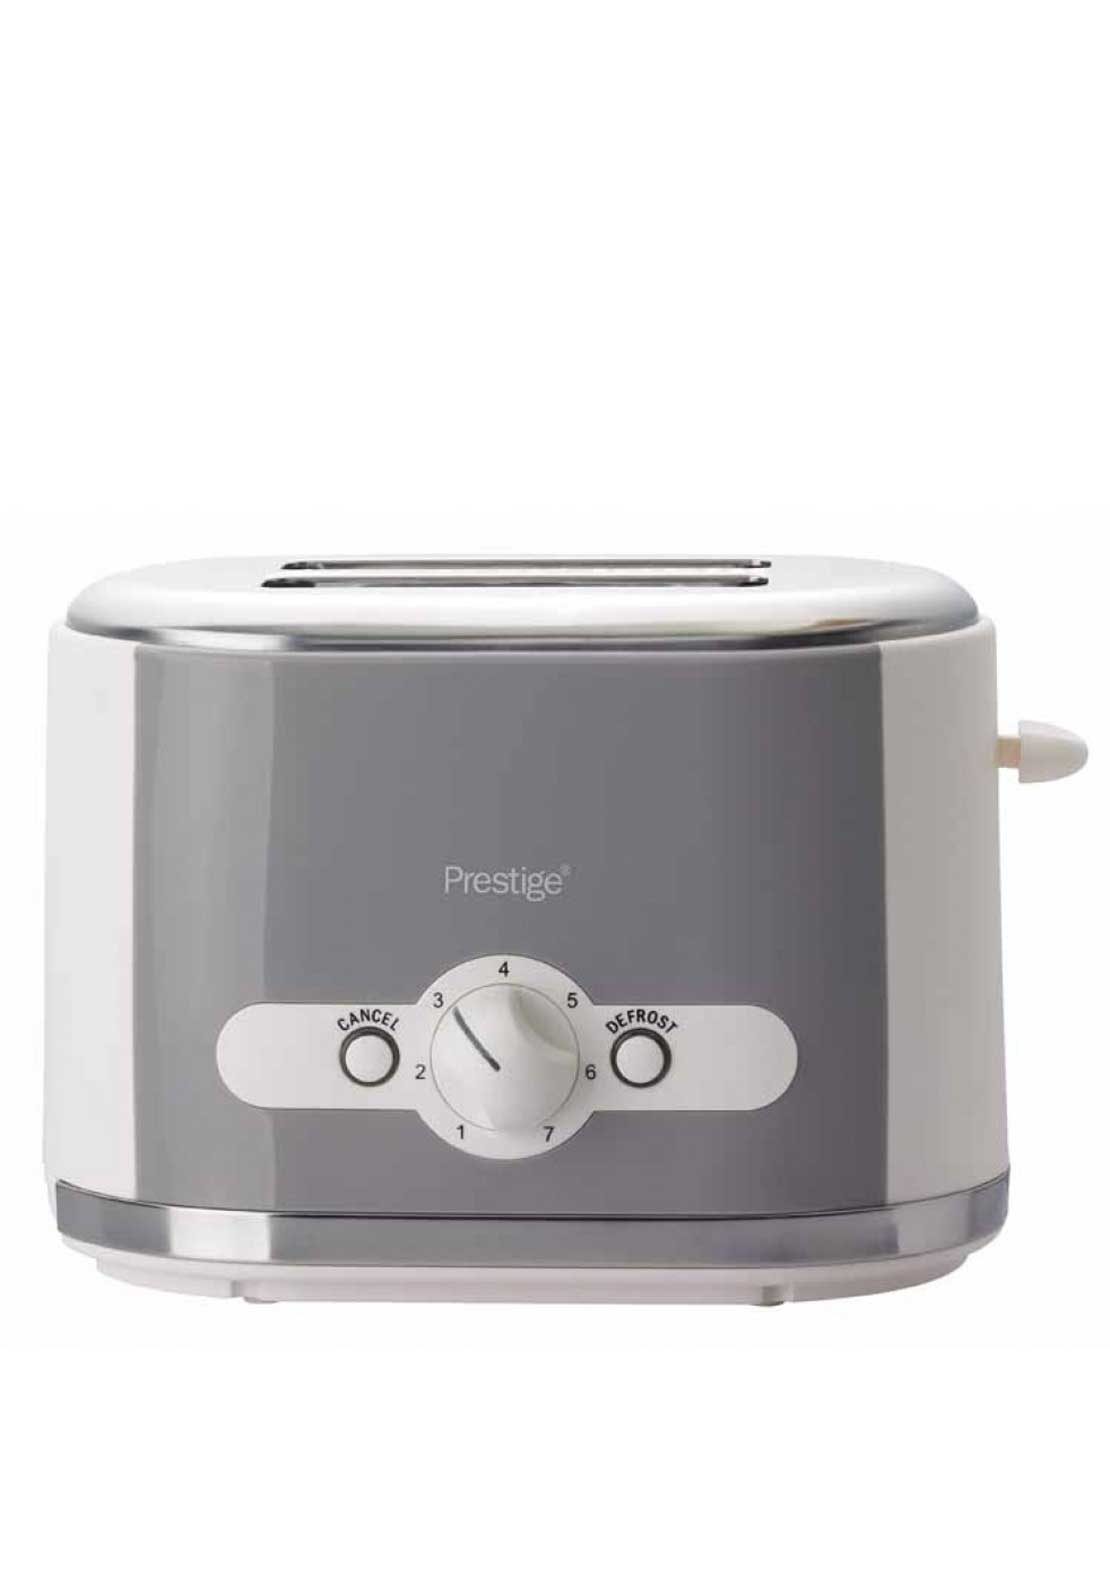 Prestige Pebble 2 Slice Toaster, Grey & White